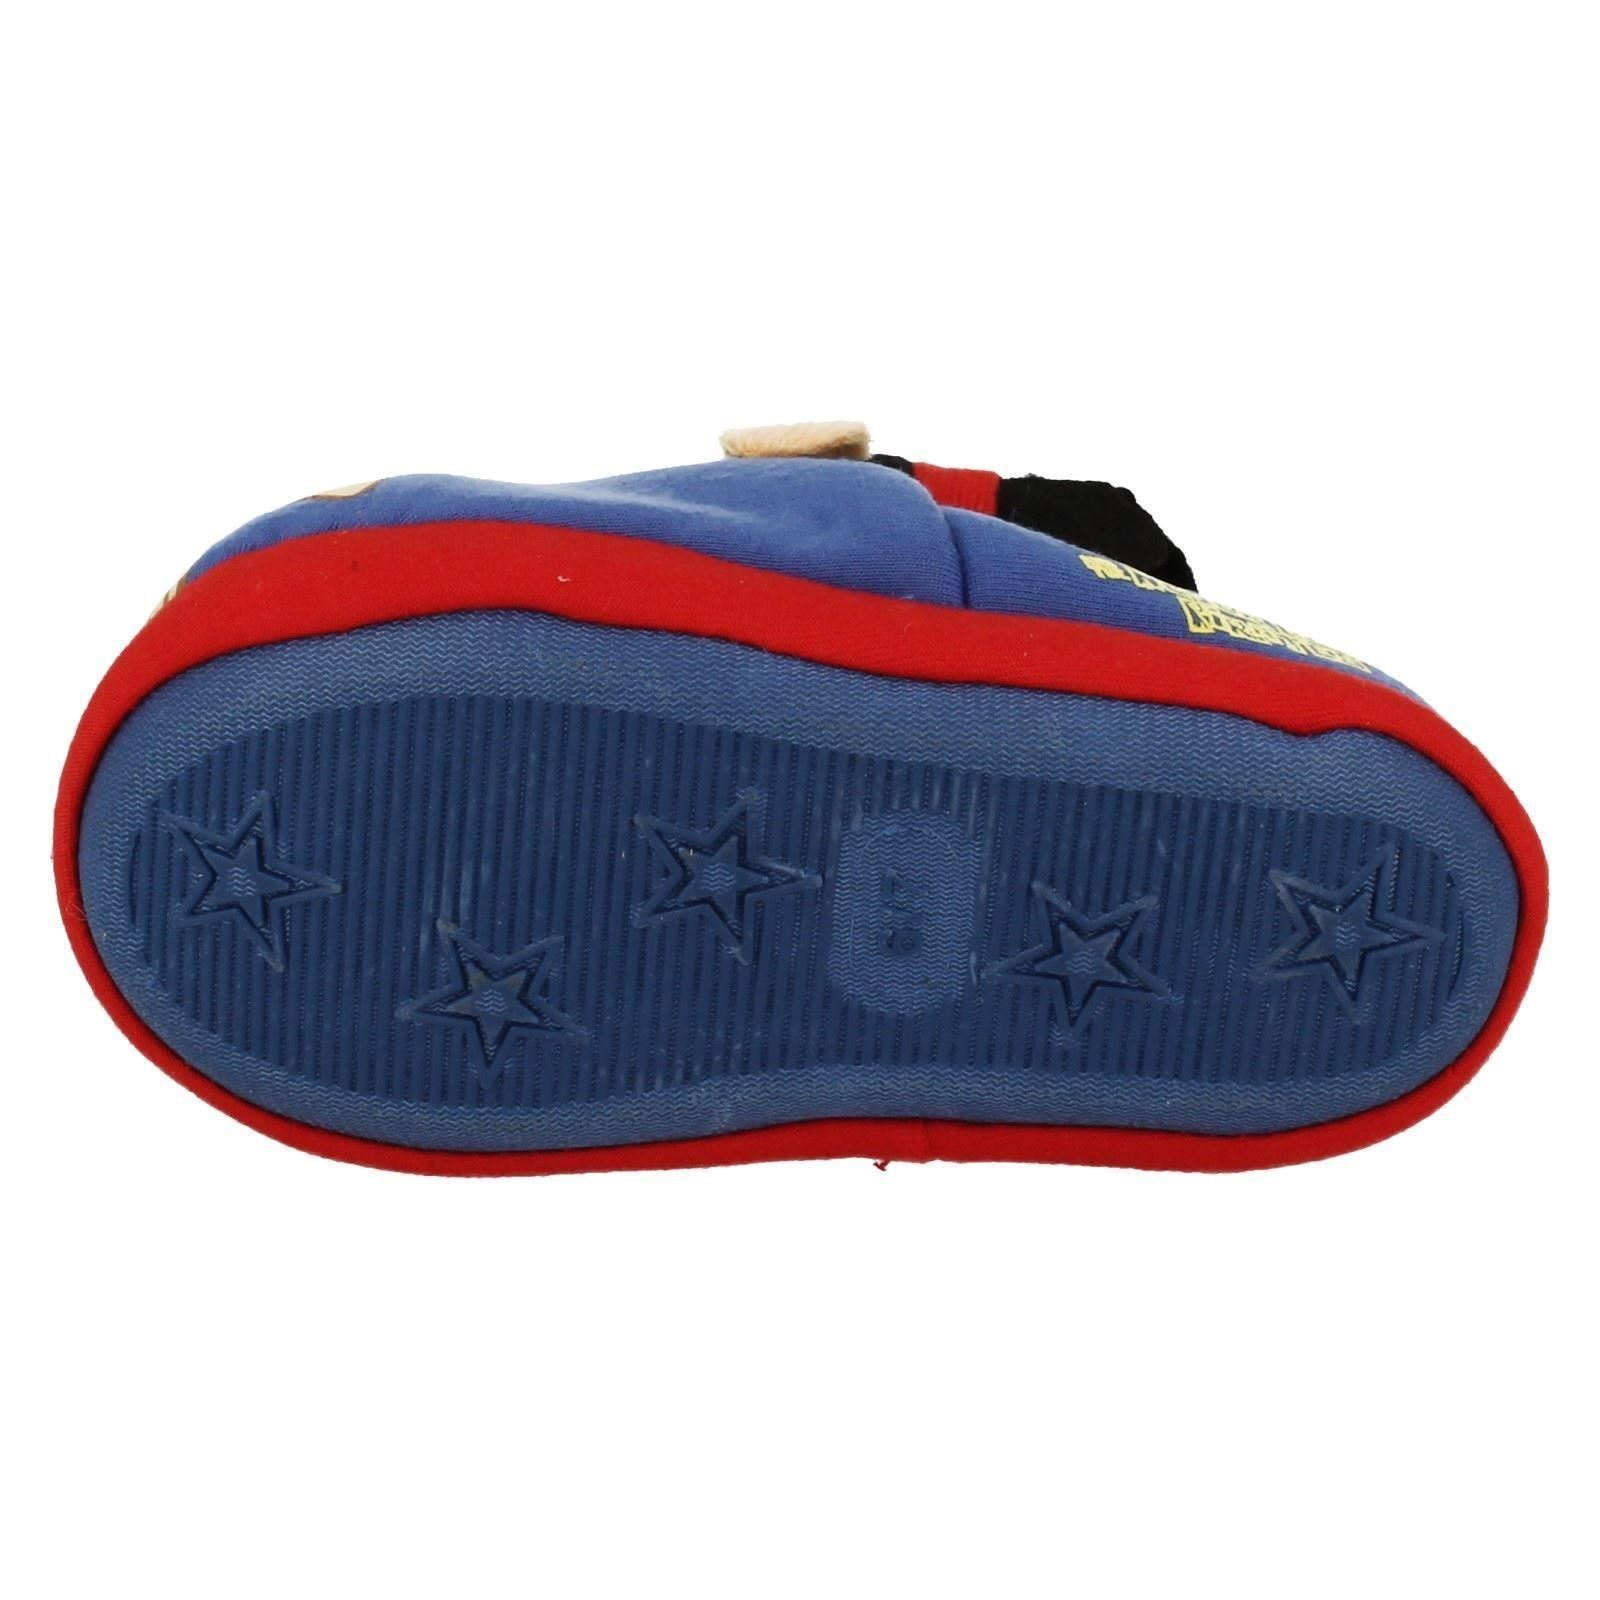 Disney Boys Slippers Style Jake And The Never Land Pirates-W